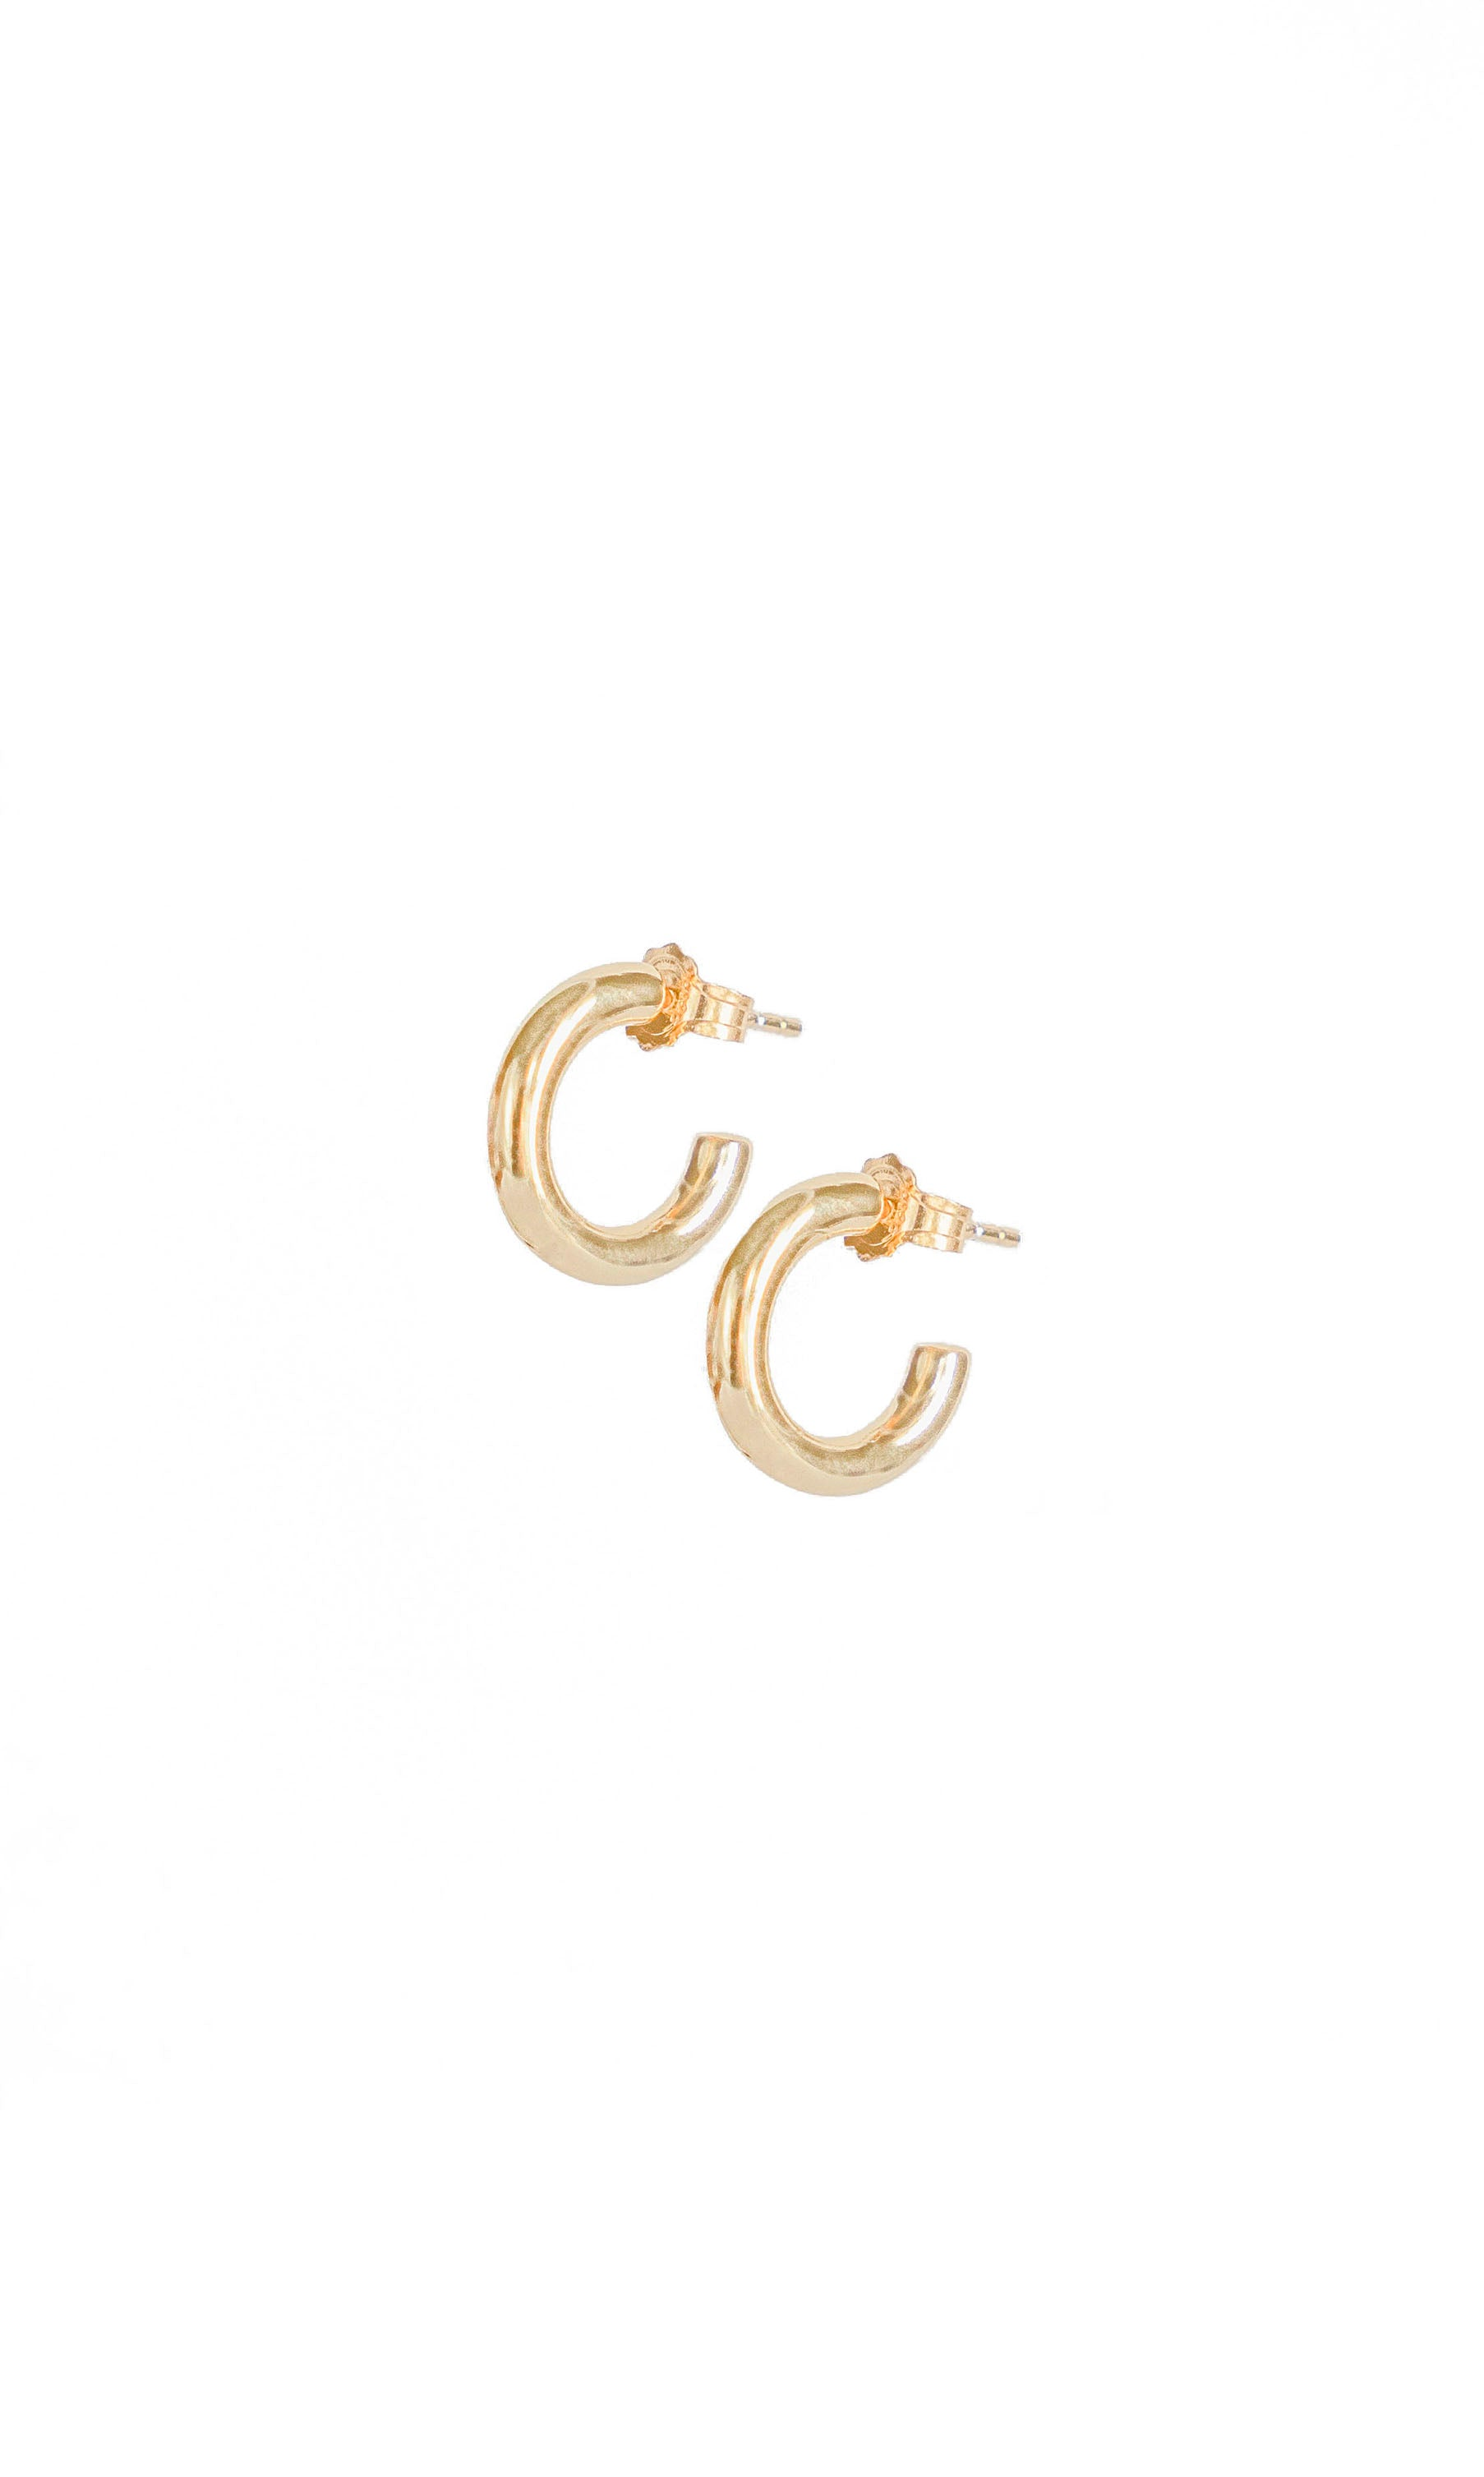 DEORA Hoop Earrings Set